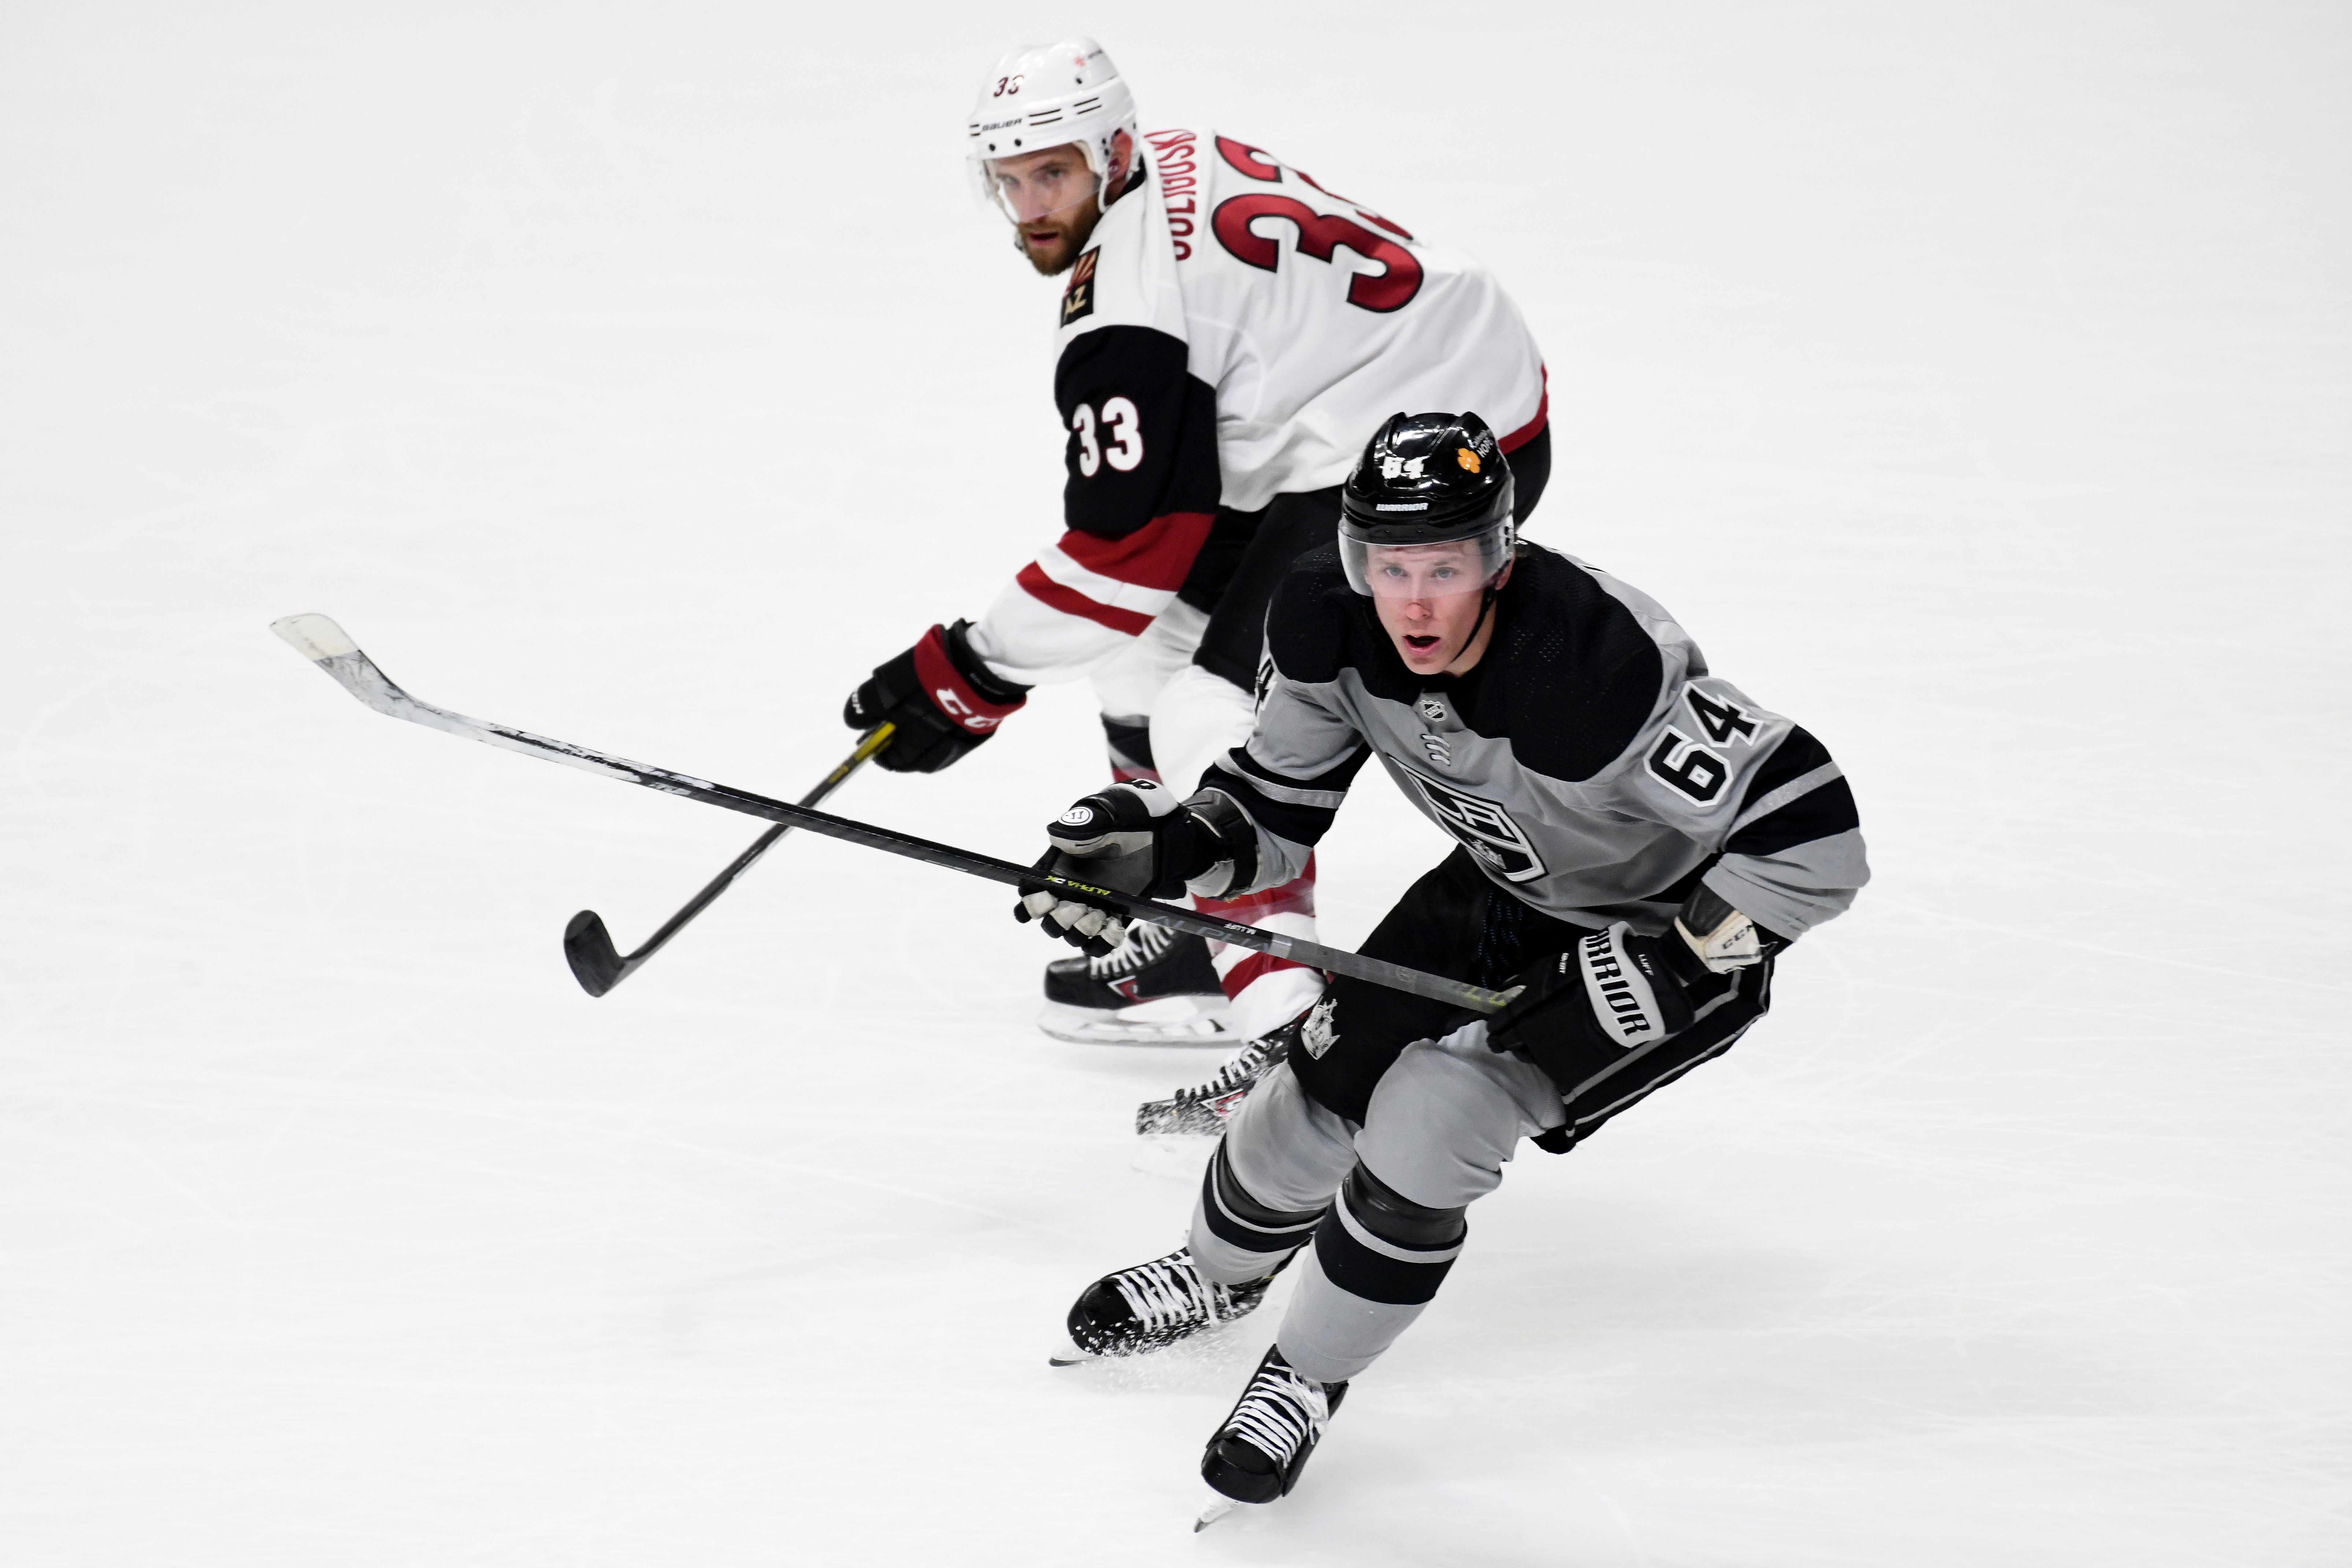 Los Angeles Kings Right Wing Matt Luff (64) and Arizona Coyotes Defenceman Alex Goligoski (33) watch play during NHL game between the Arizona Coyotes and the Los Angeles Kings on April 24, 2021, at the Staples Center in Los Angeles, CA.